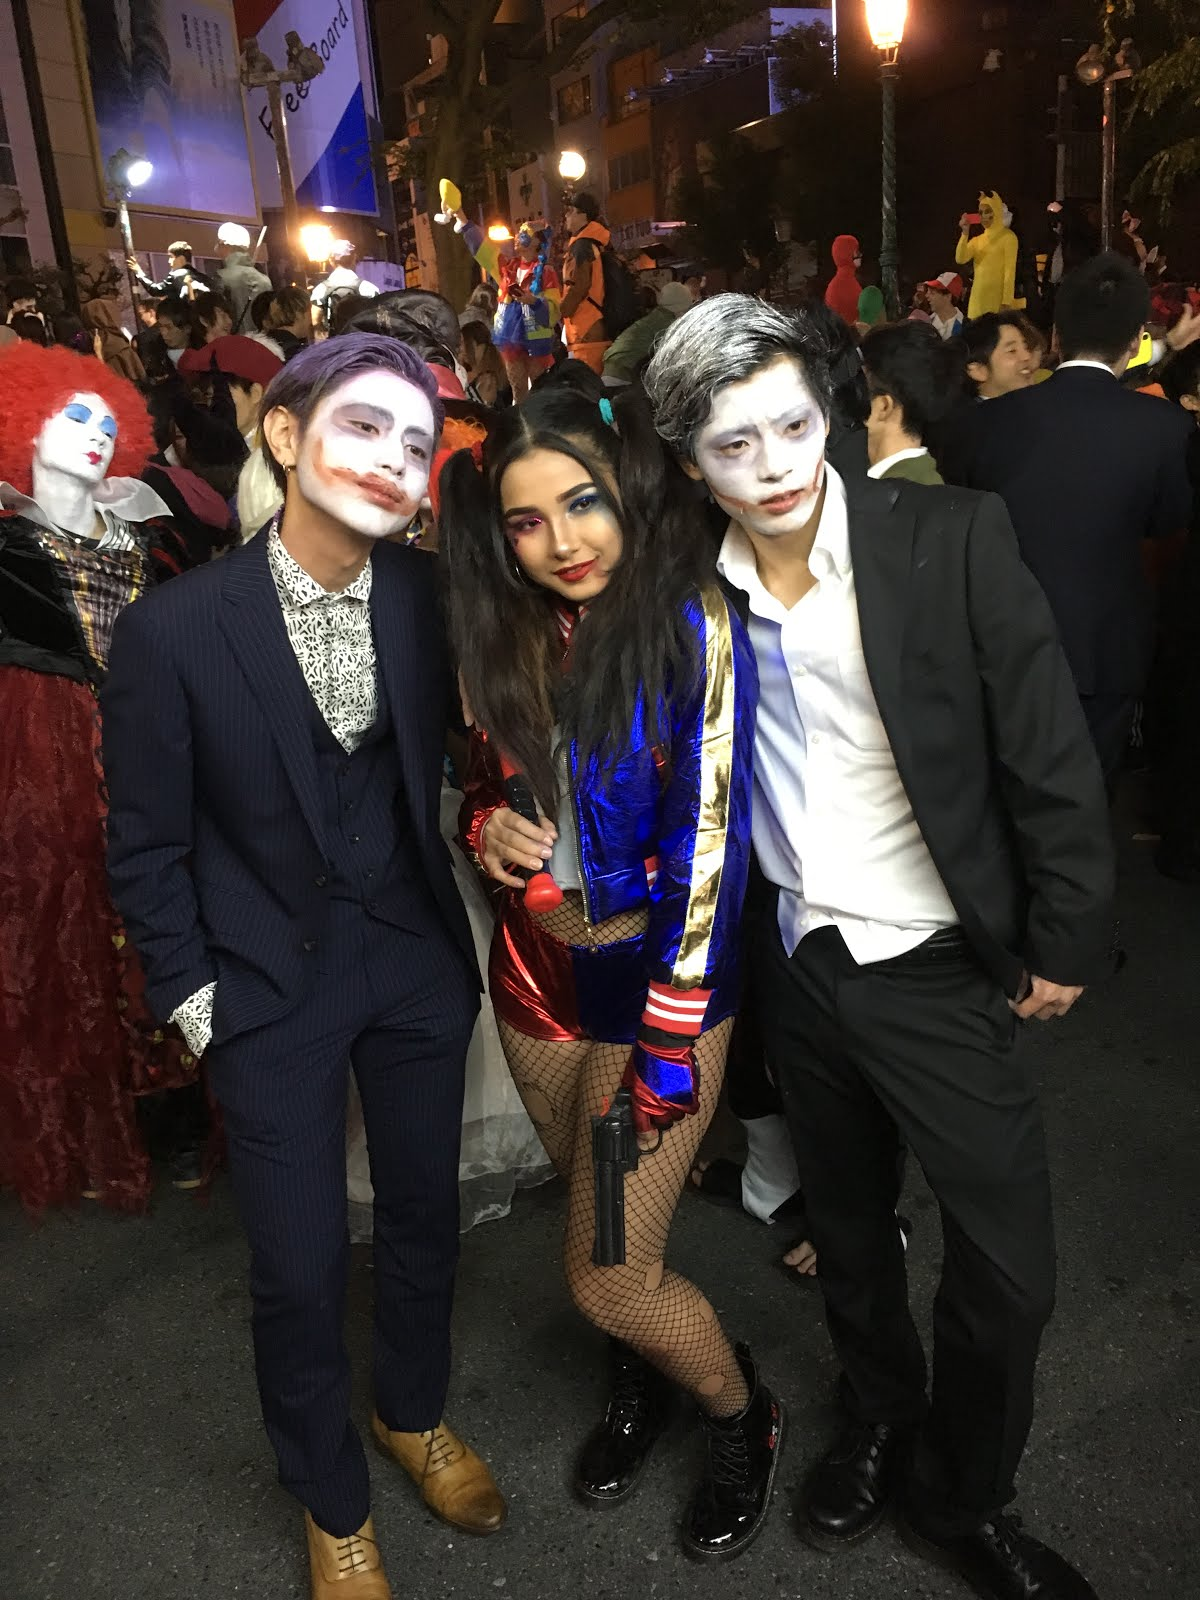 Harley Quinn and Joker costumes are still popular about a year and a half after Suicide Squad came out.  sc 1 st  Kansai Culture & Kansai Culture: Halloween 2017; Osaka